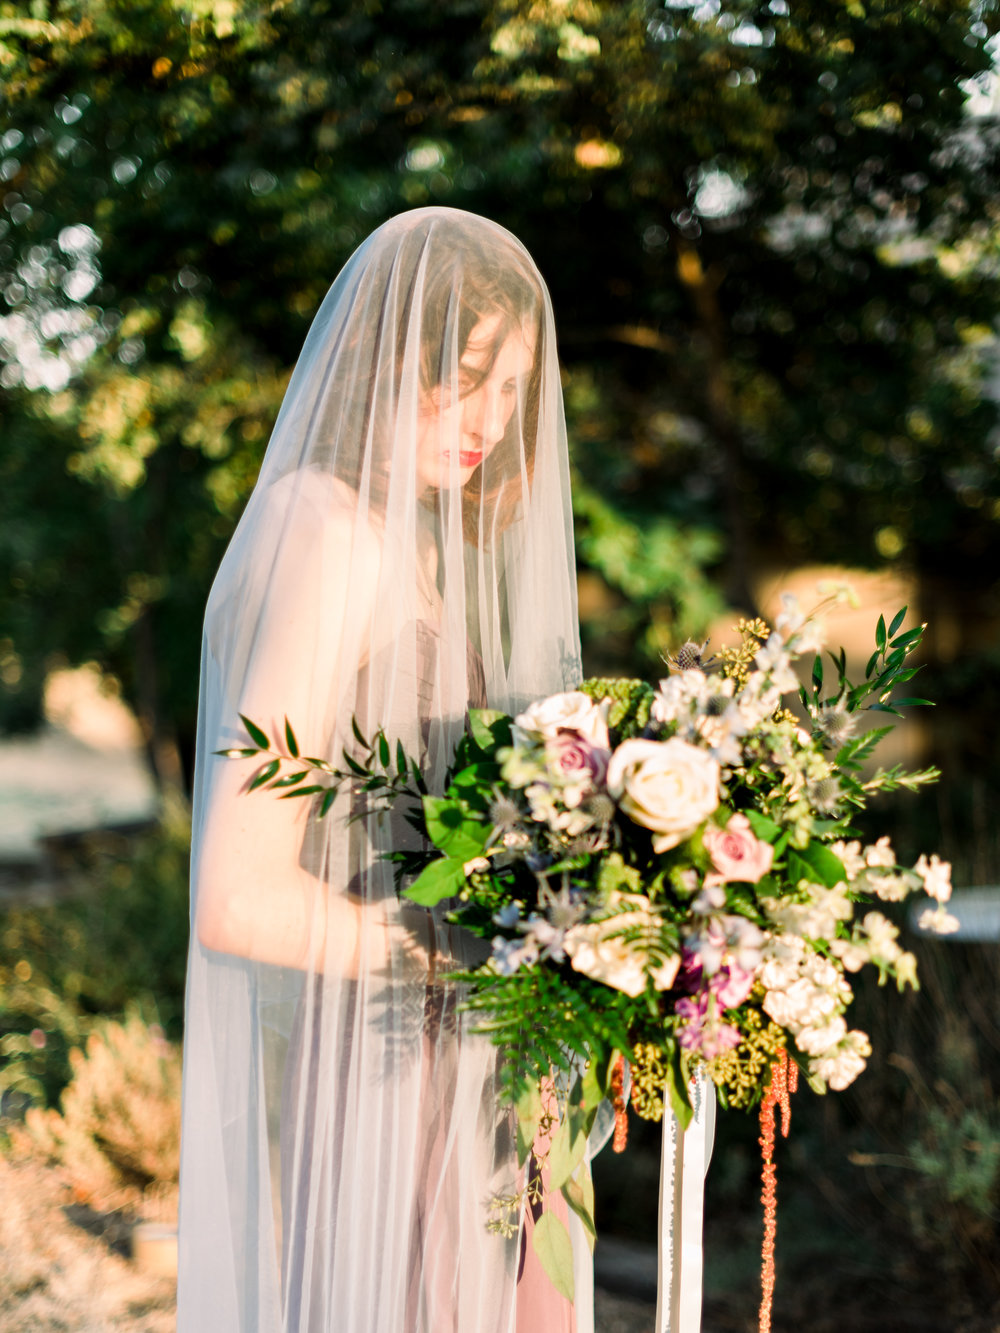 veiled-bride-holding-a-bouquet.jpg